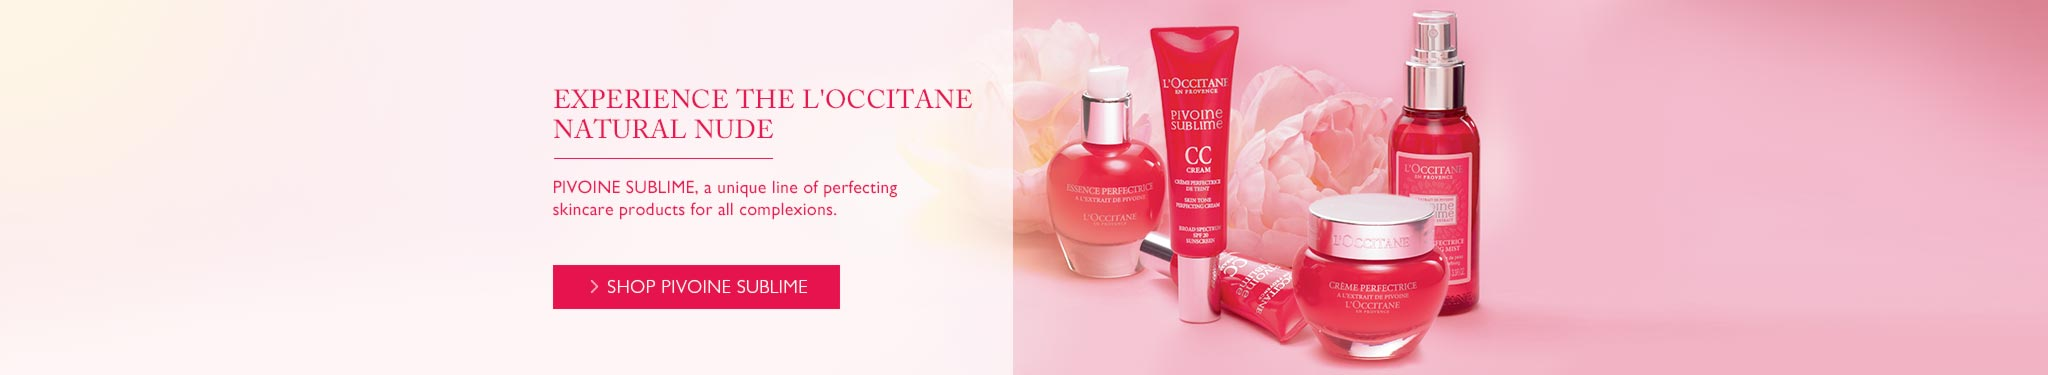 Experience The L'OCCITANE Natural Nude.PIVOINE SUBLIME,a unique line of perfecting skincare products for all complexions.